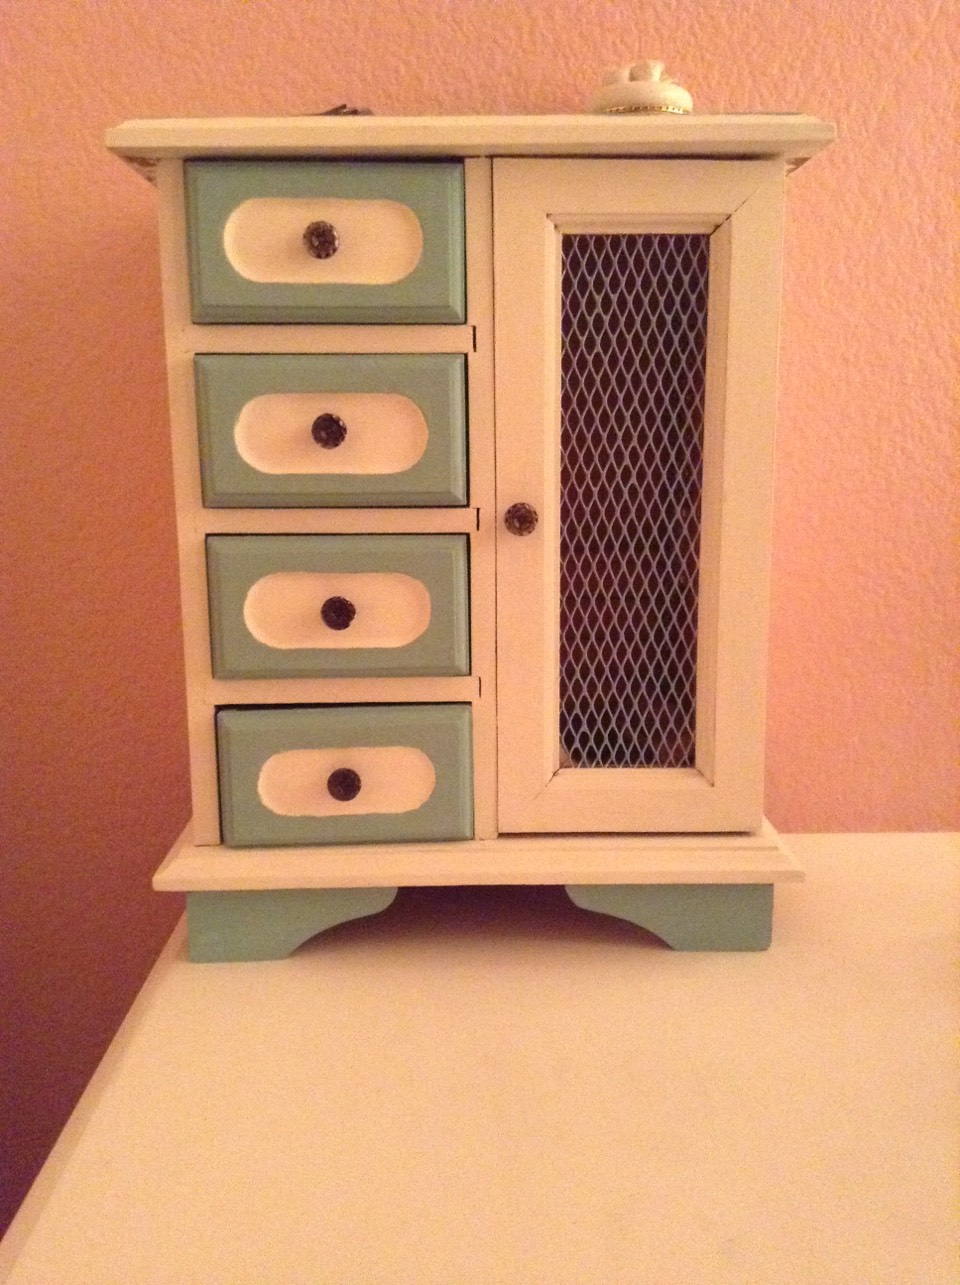 Make or even buy a jewelry box